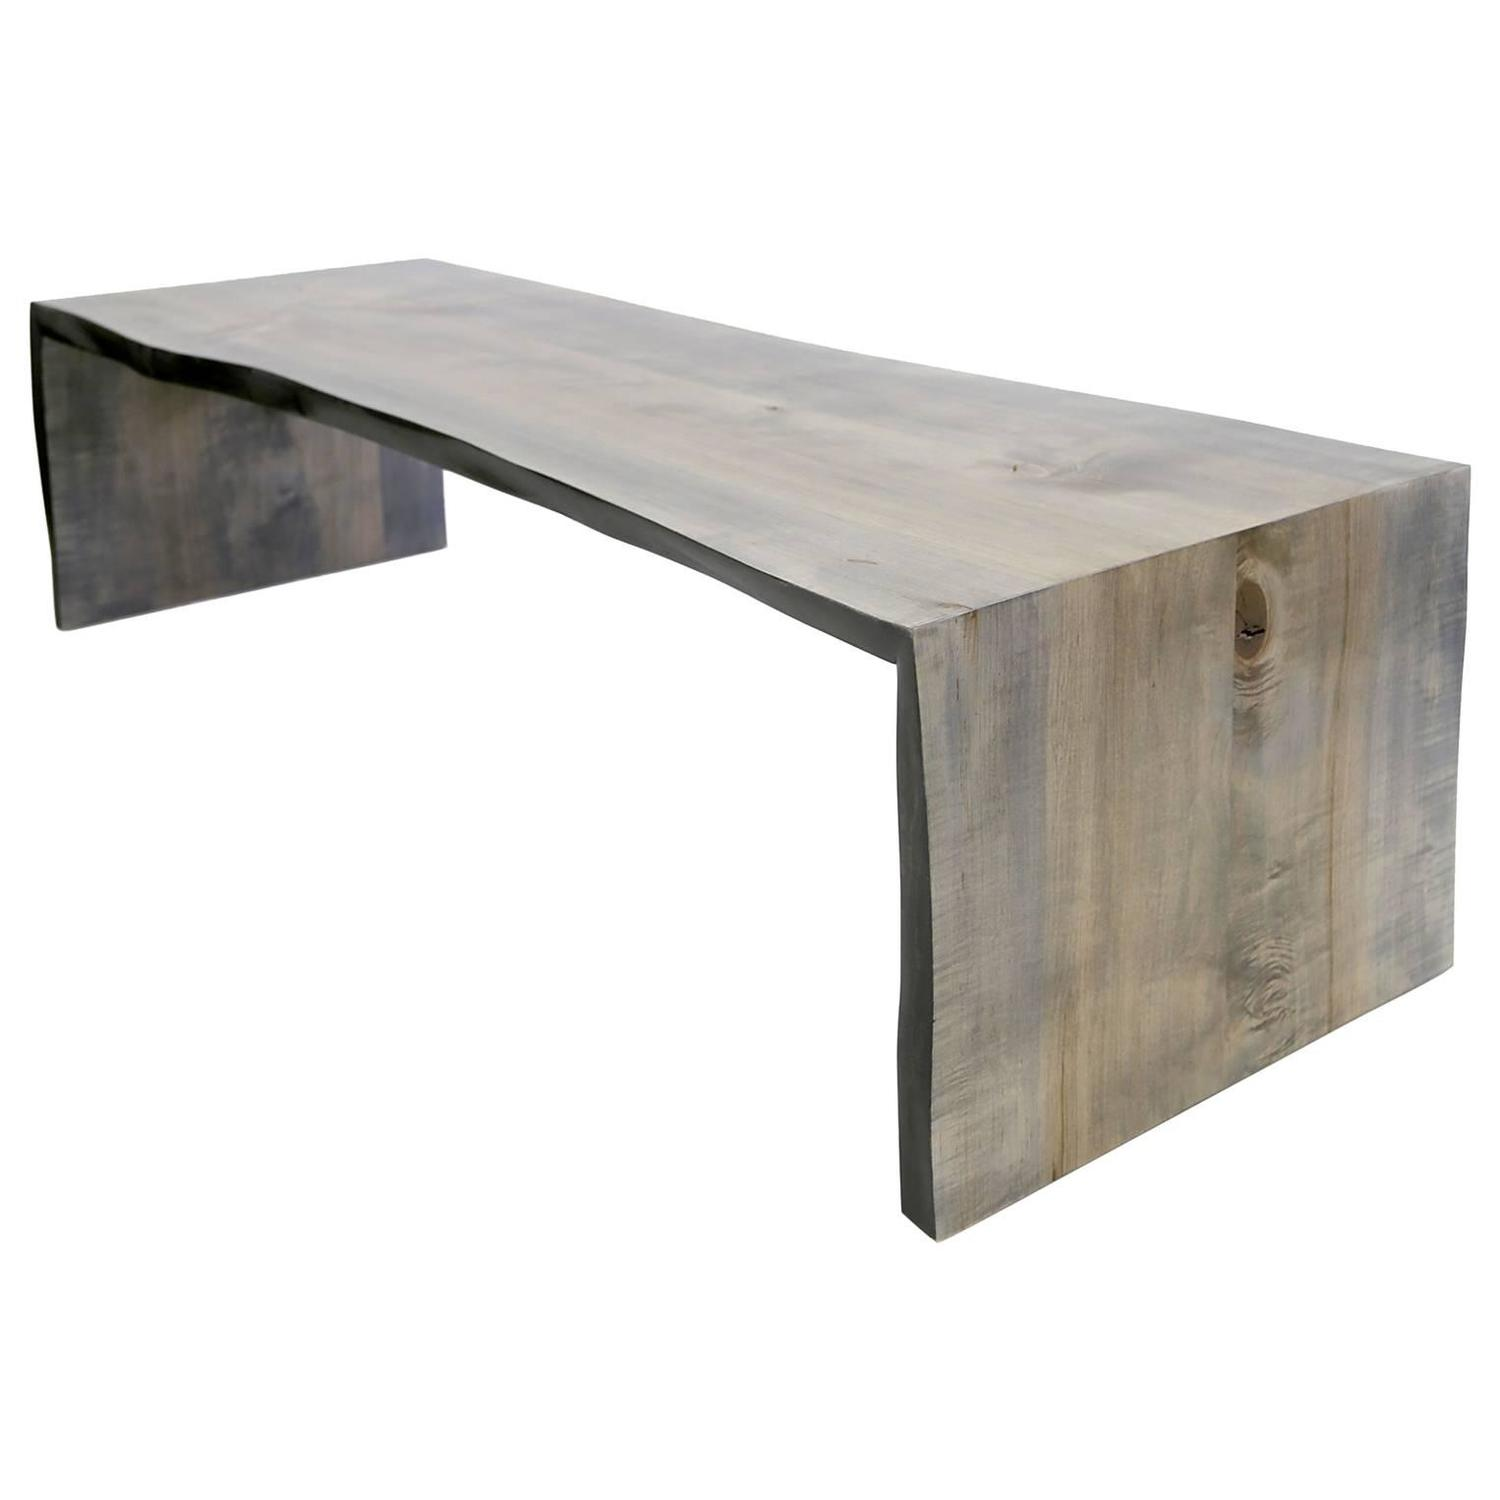 Driftwood tables 32 for sale at 1stdibs sentient folded maple slab live edge coffee table with driftwood finish geotapseo Choice Image